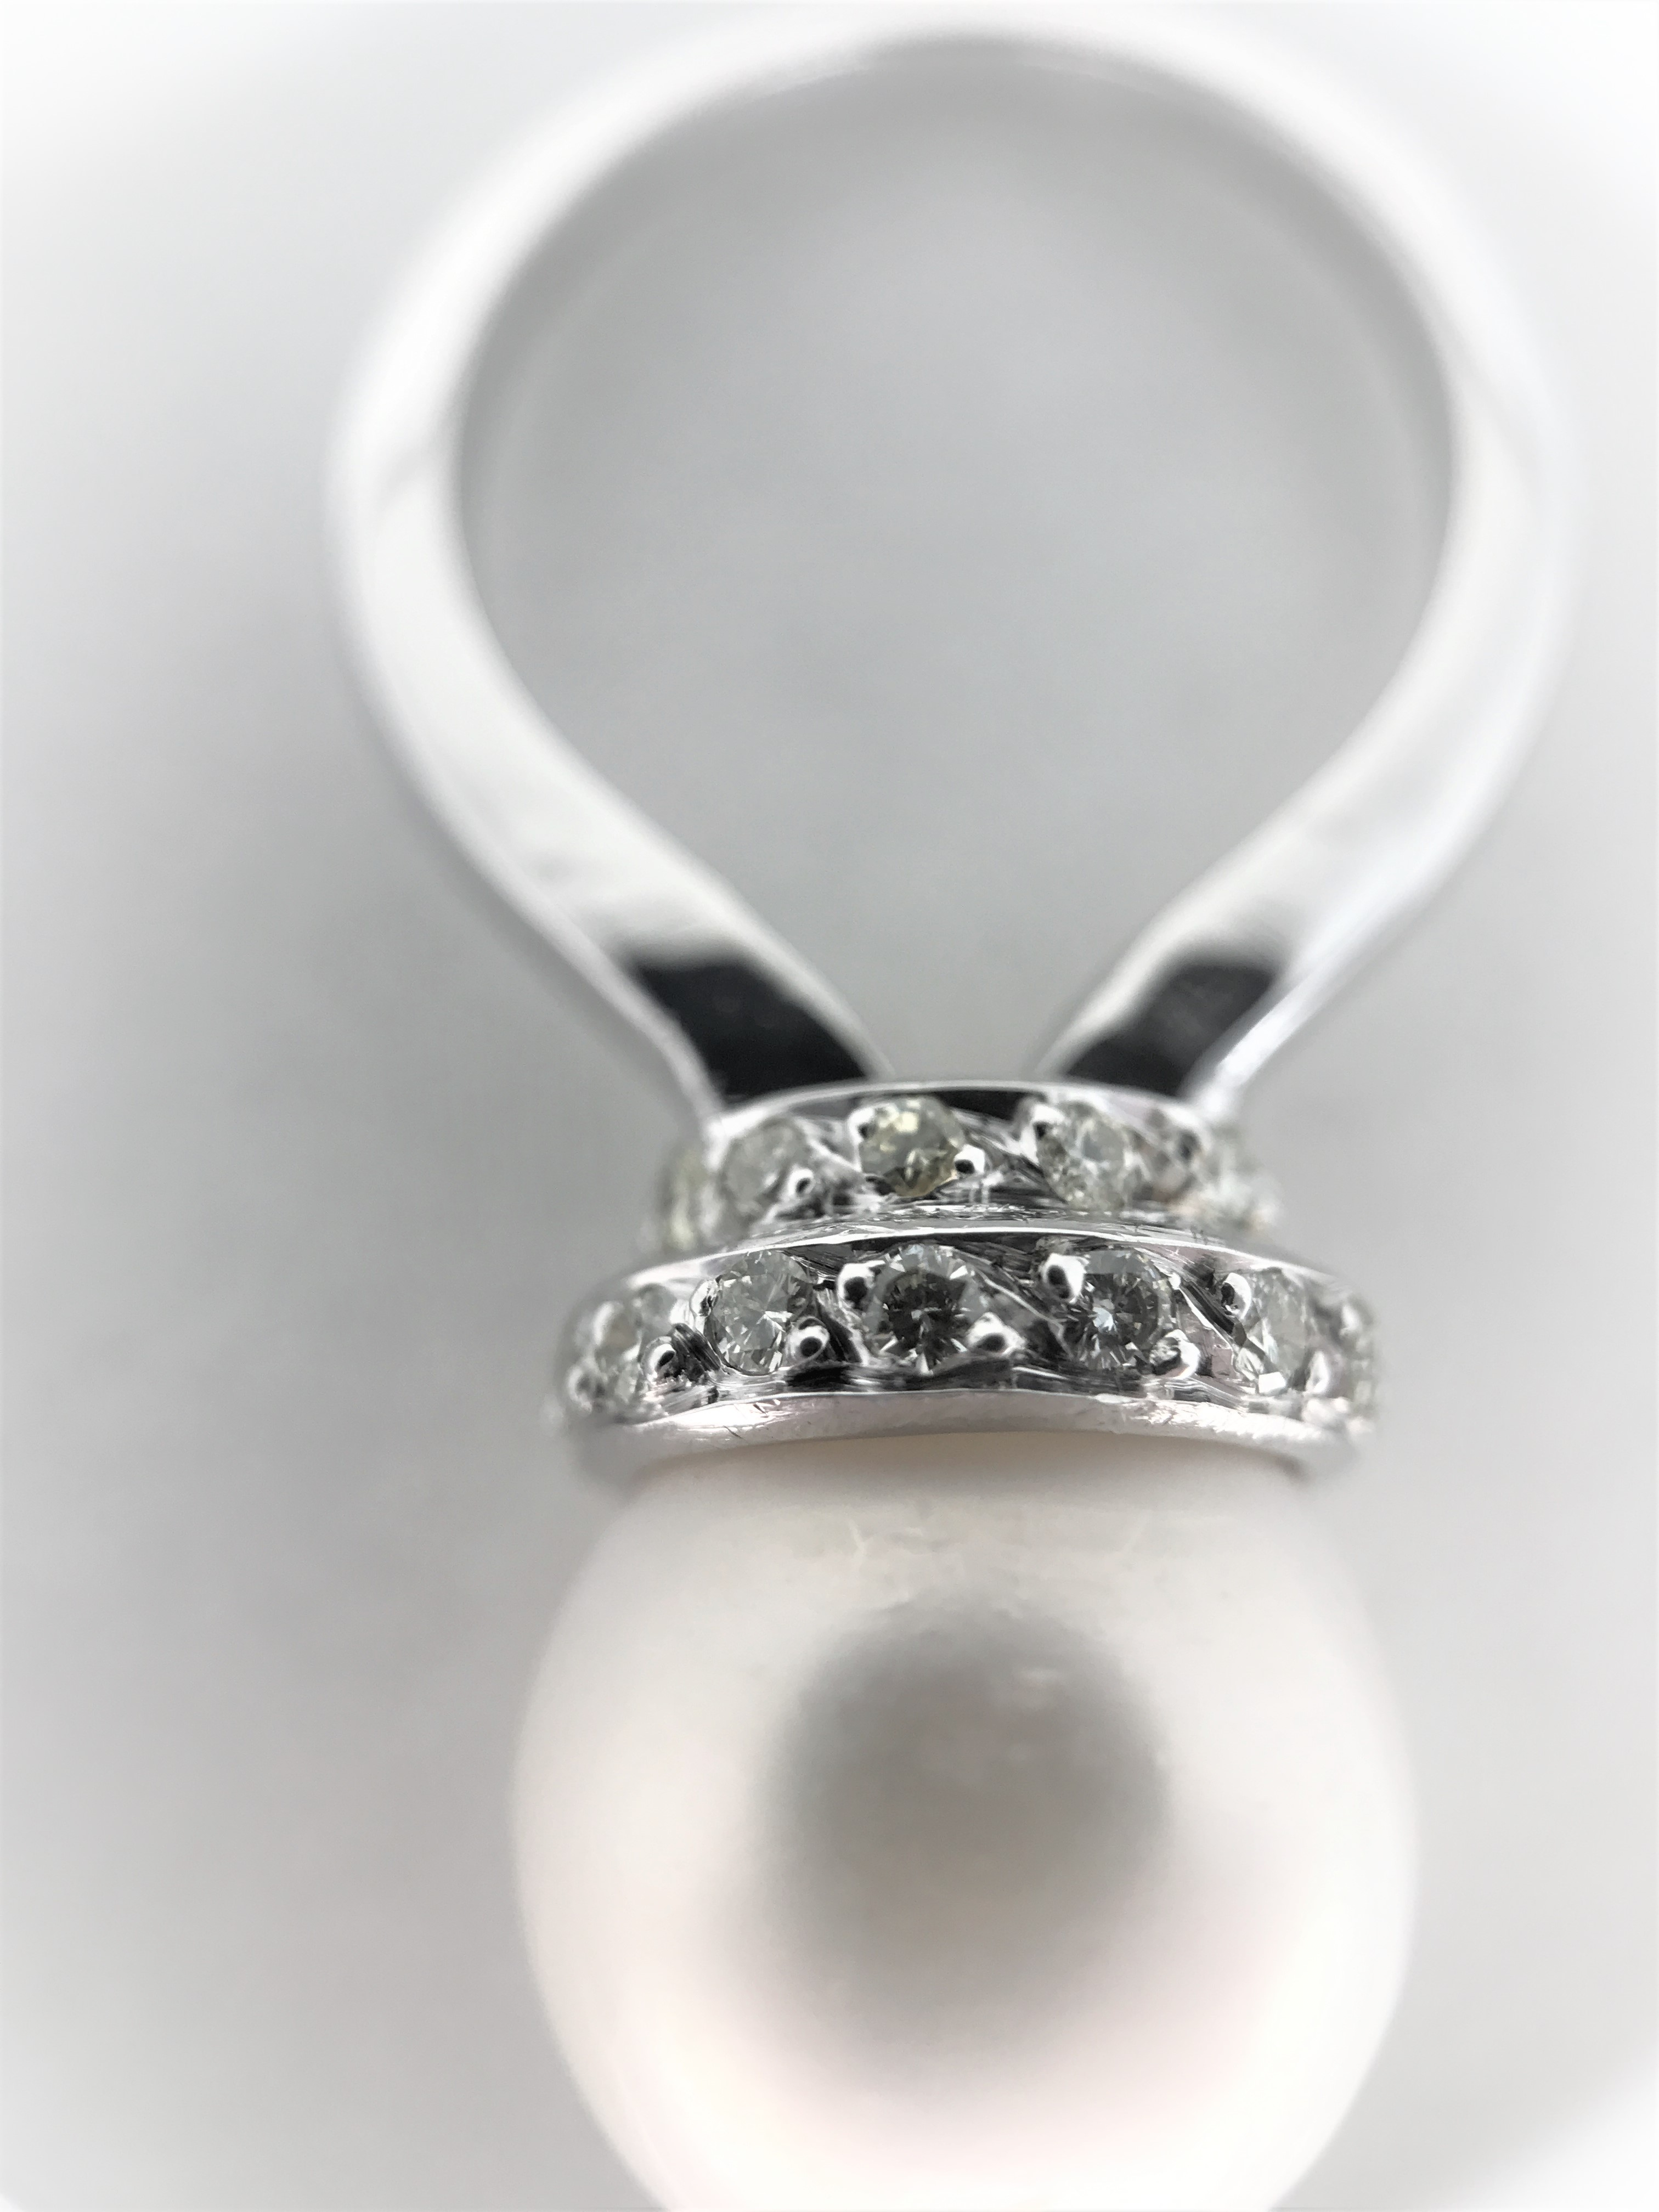 Lot 8 - Large freshwater pearl ring with diamonds 14k white gold 12mm fresh waterpearl 28 diamonds Total